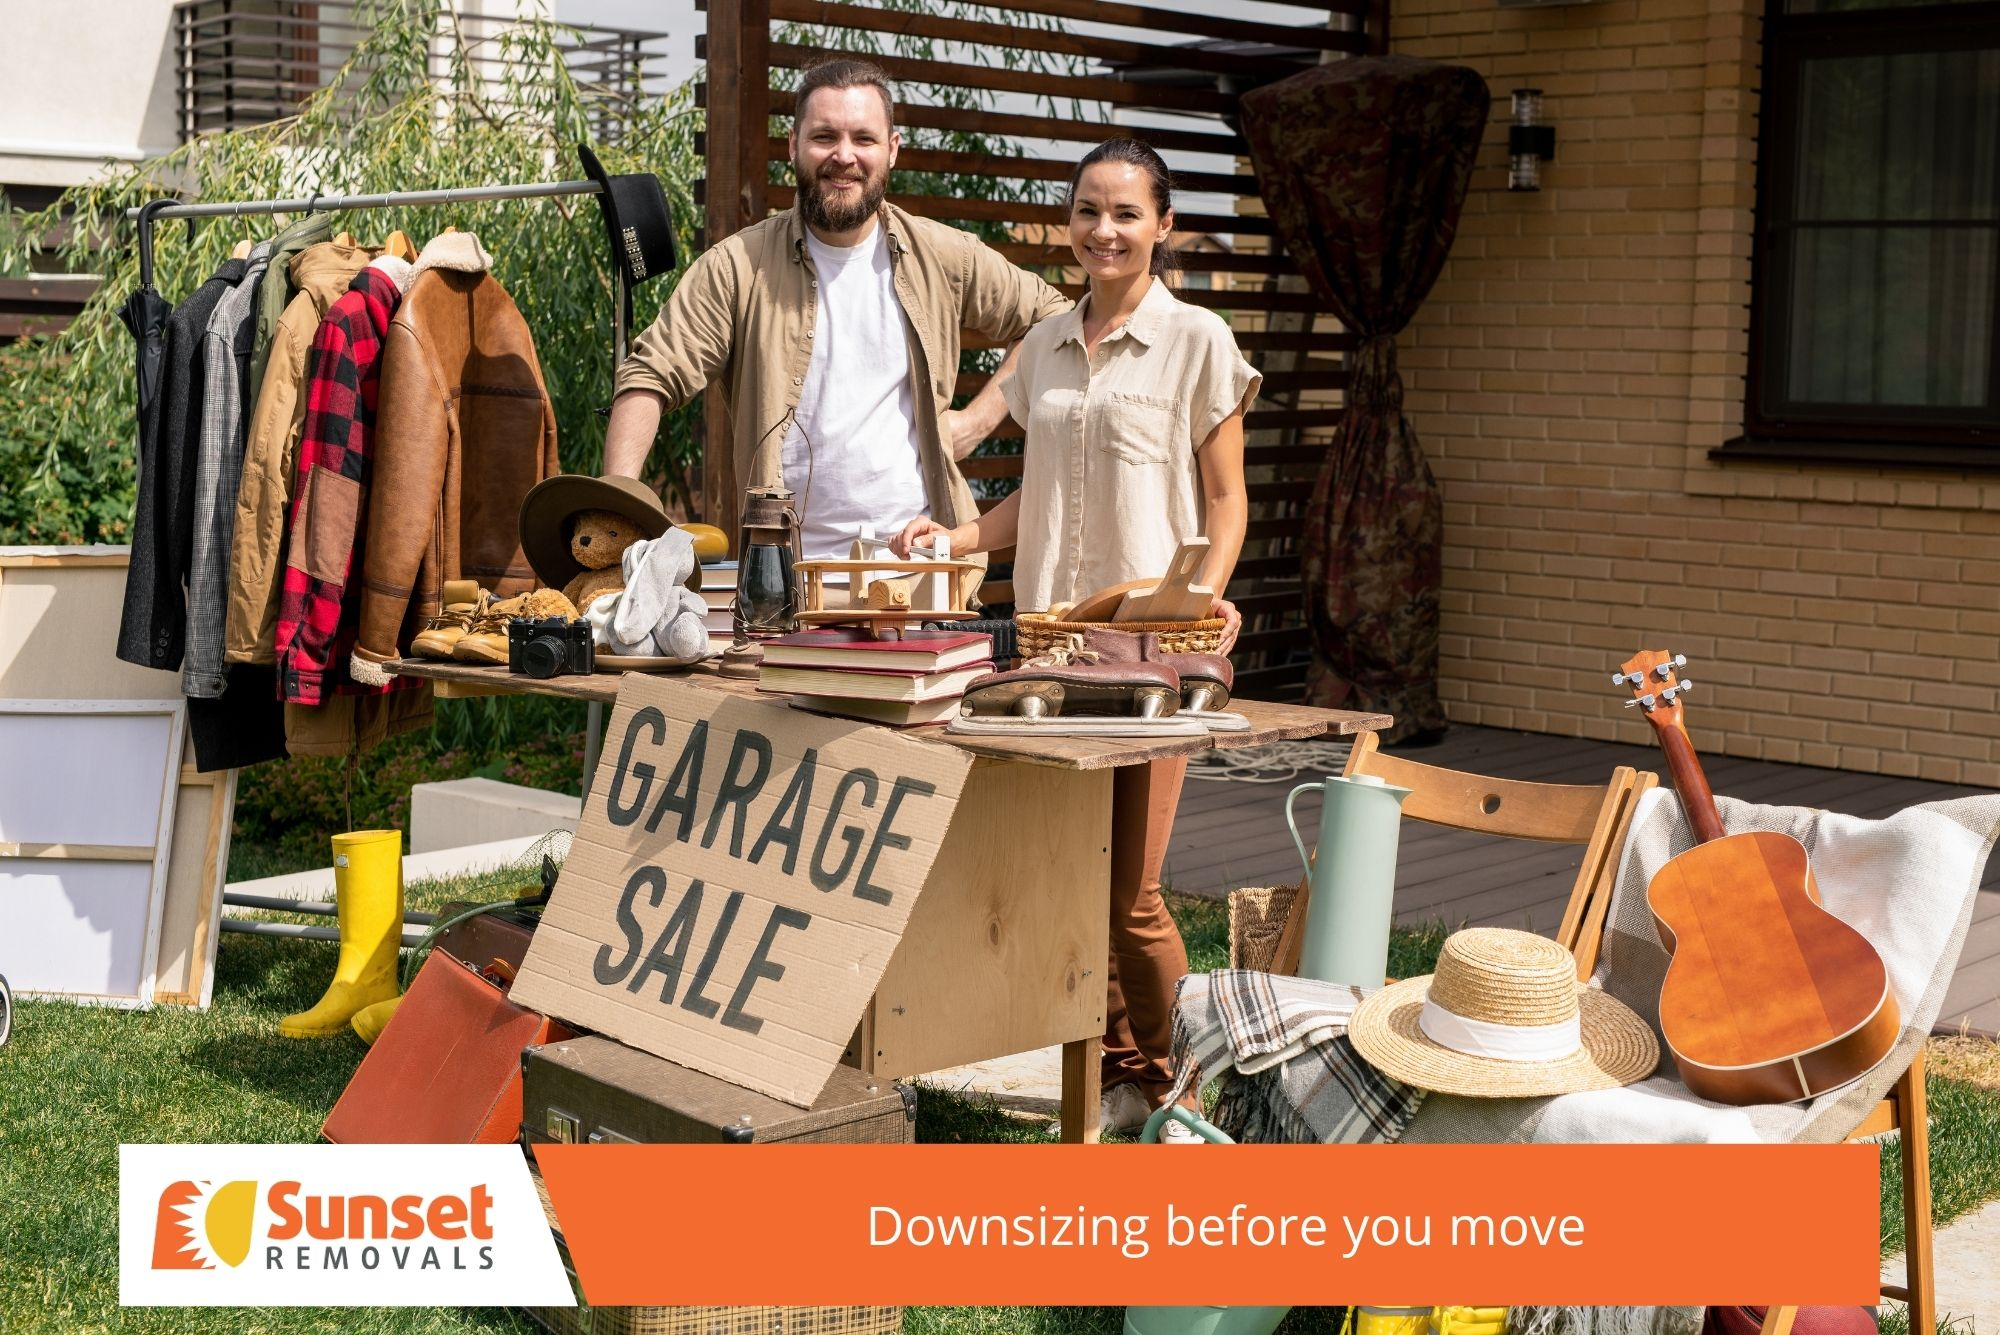 Downsizing before you move